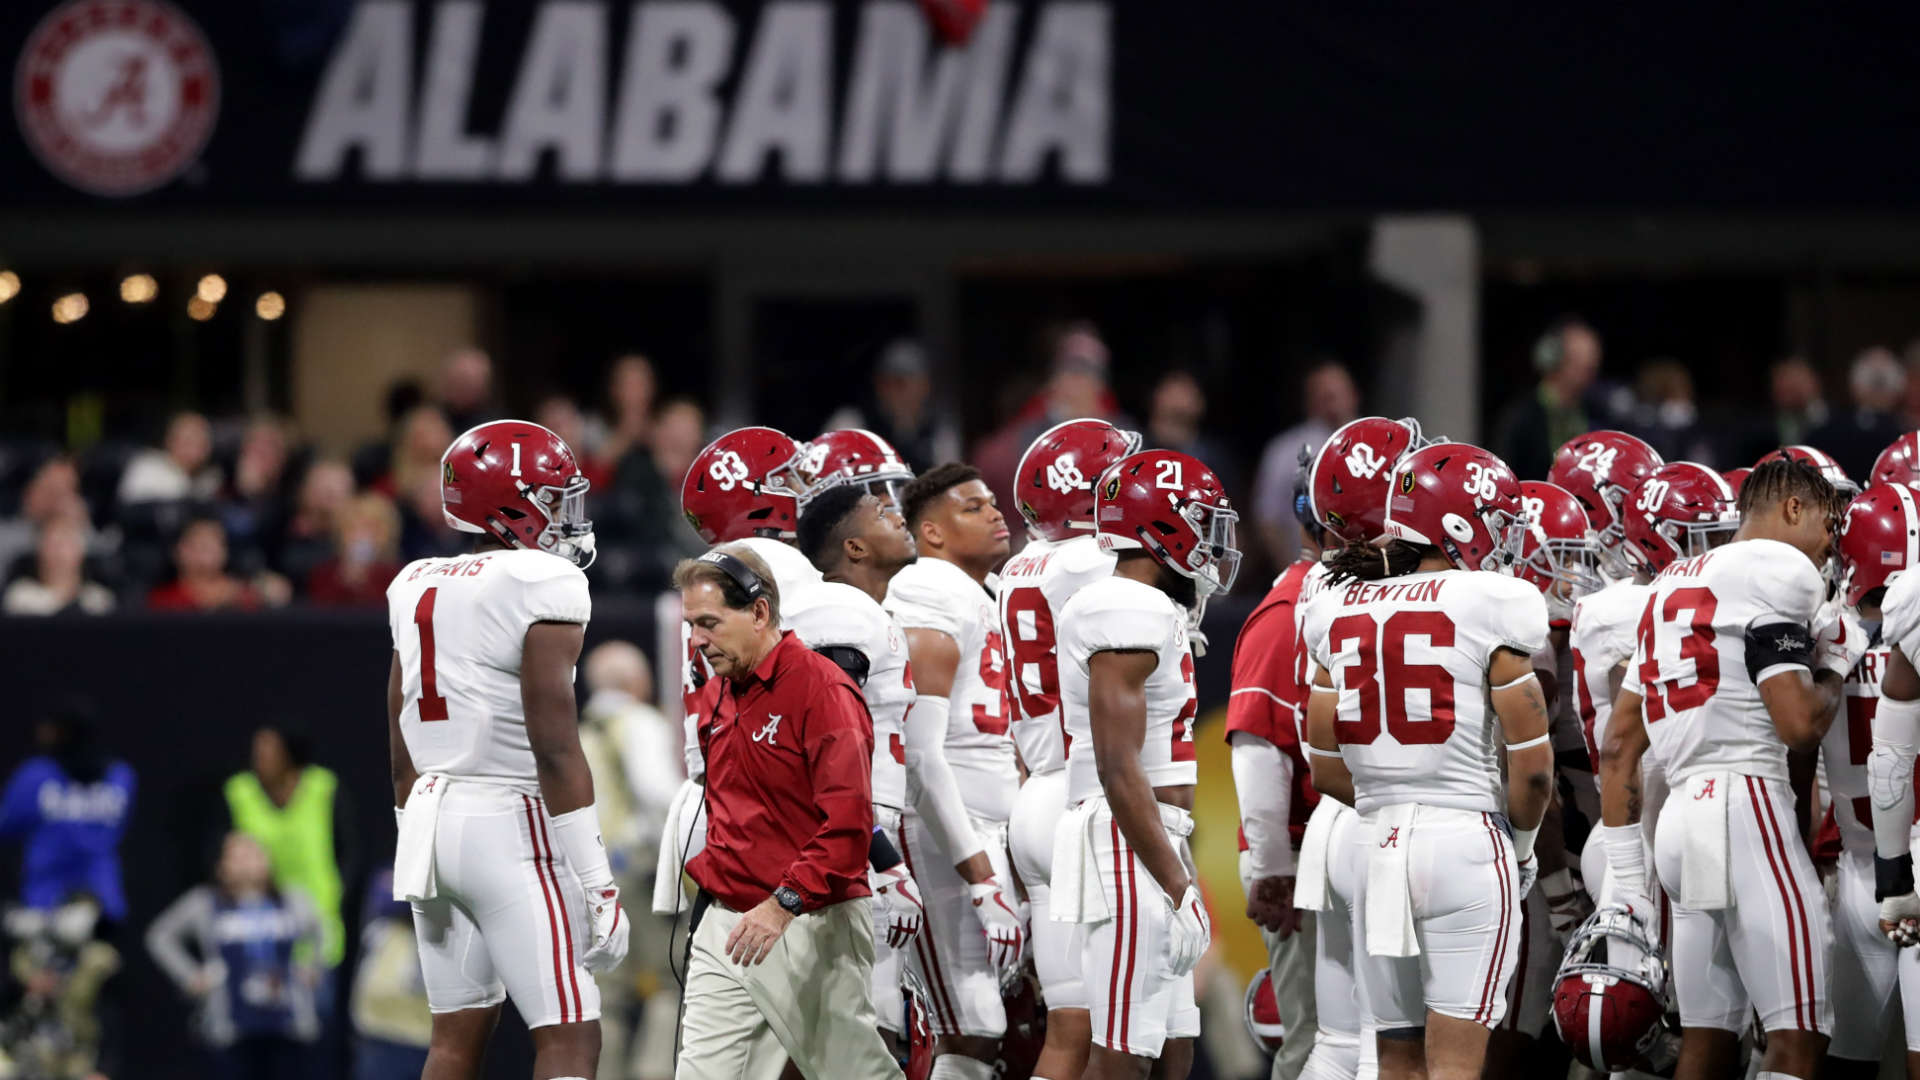 Alabama's Kyriq McDonald collapses on sideline during national championship game